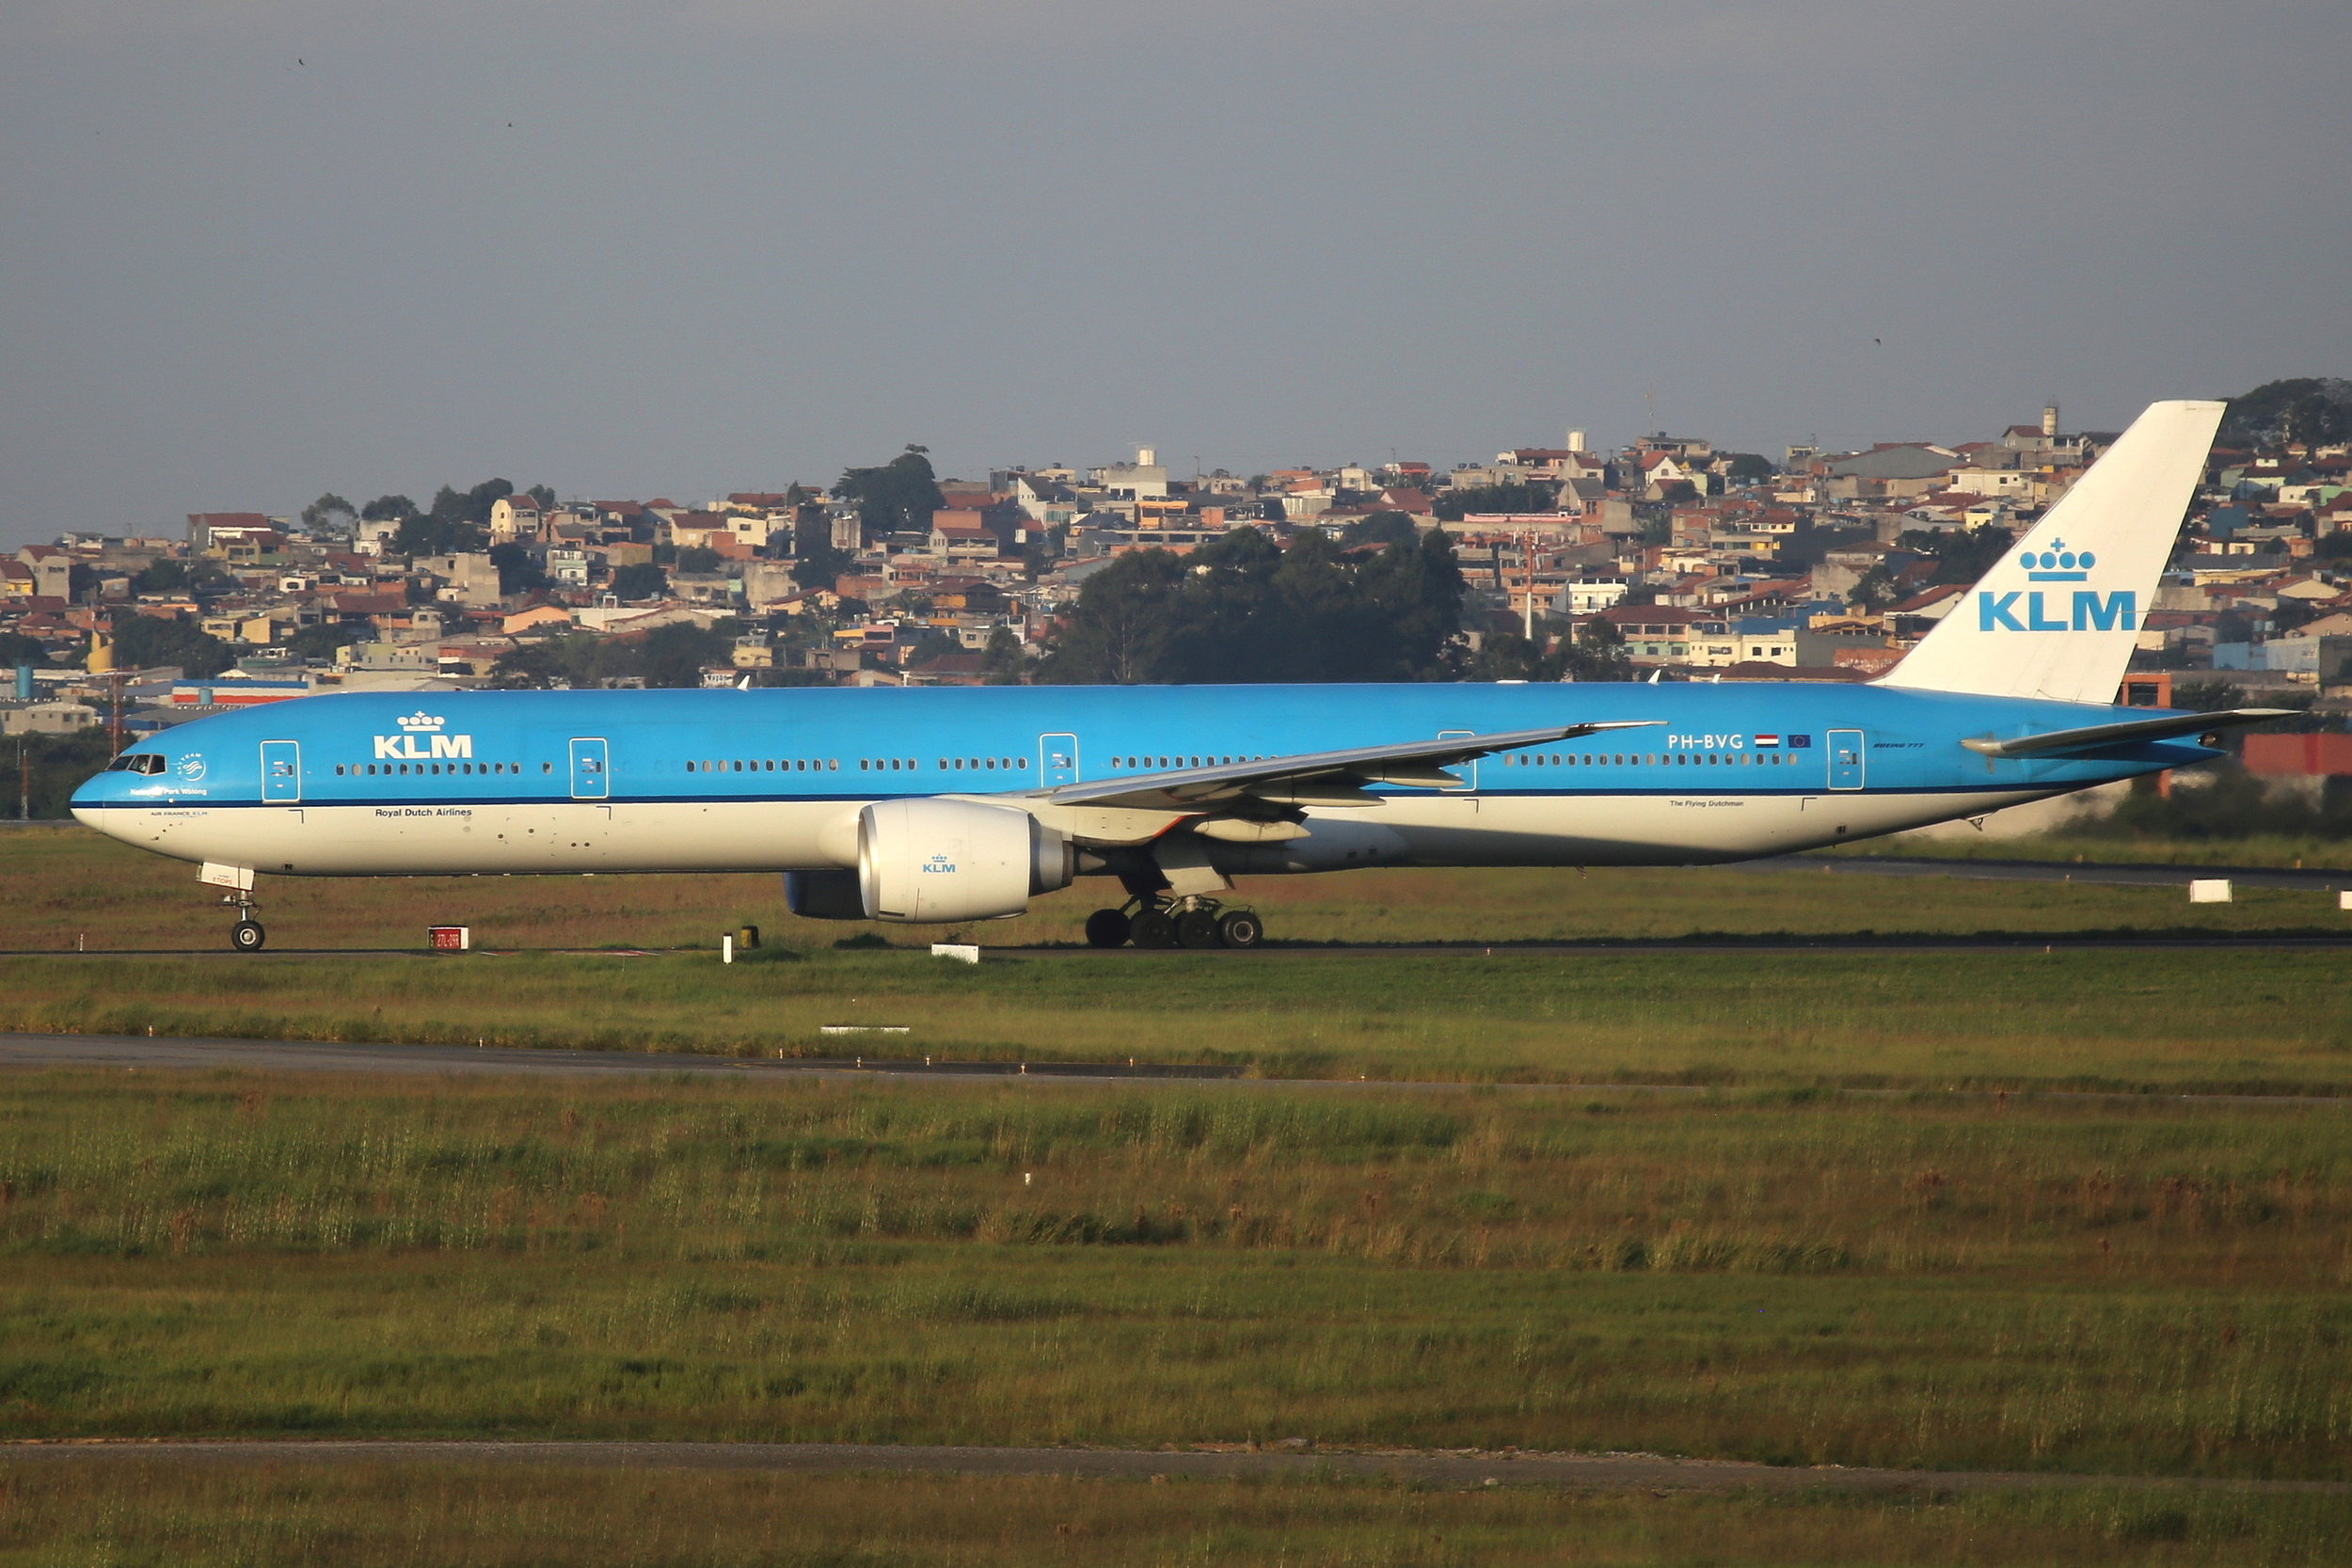 PH-BVG KLM B777-3 taken from the roof of the Matiz Hotel at Sao Paulo Guarulhos Airport 27th April 2019 by John Wood